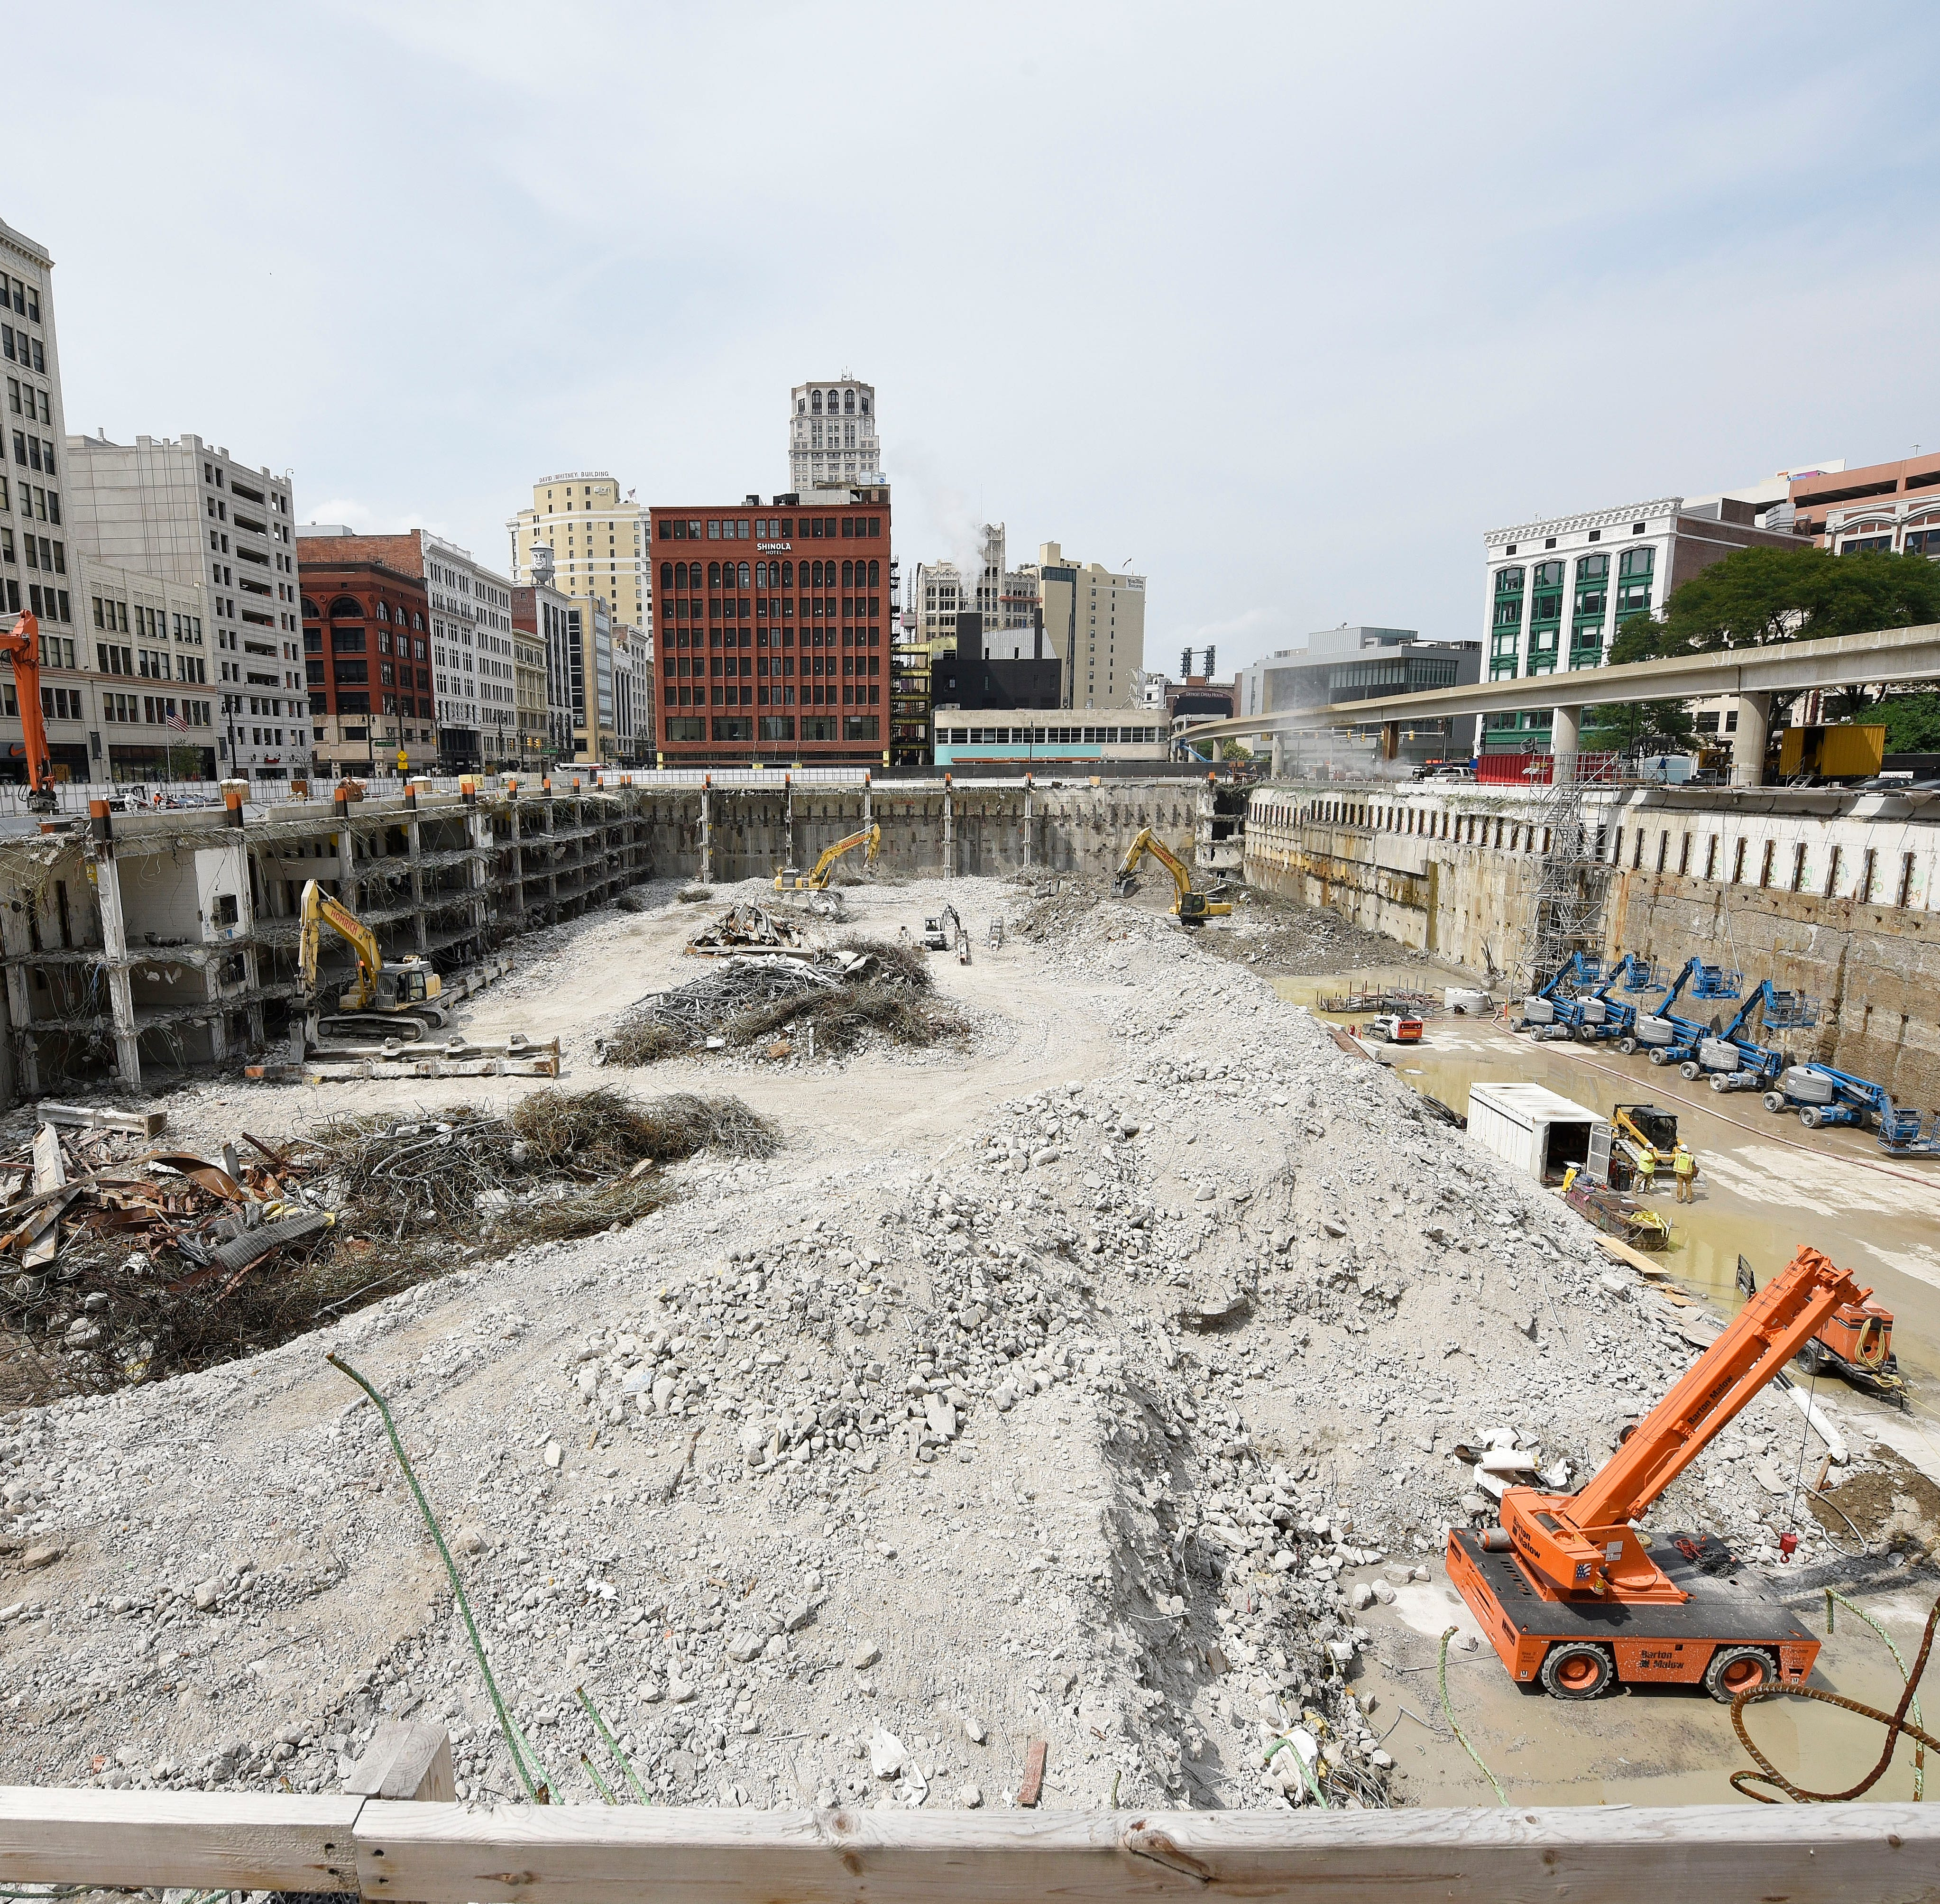 Former Detroit Hudson site demo on schedule